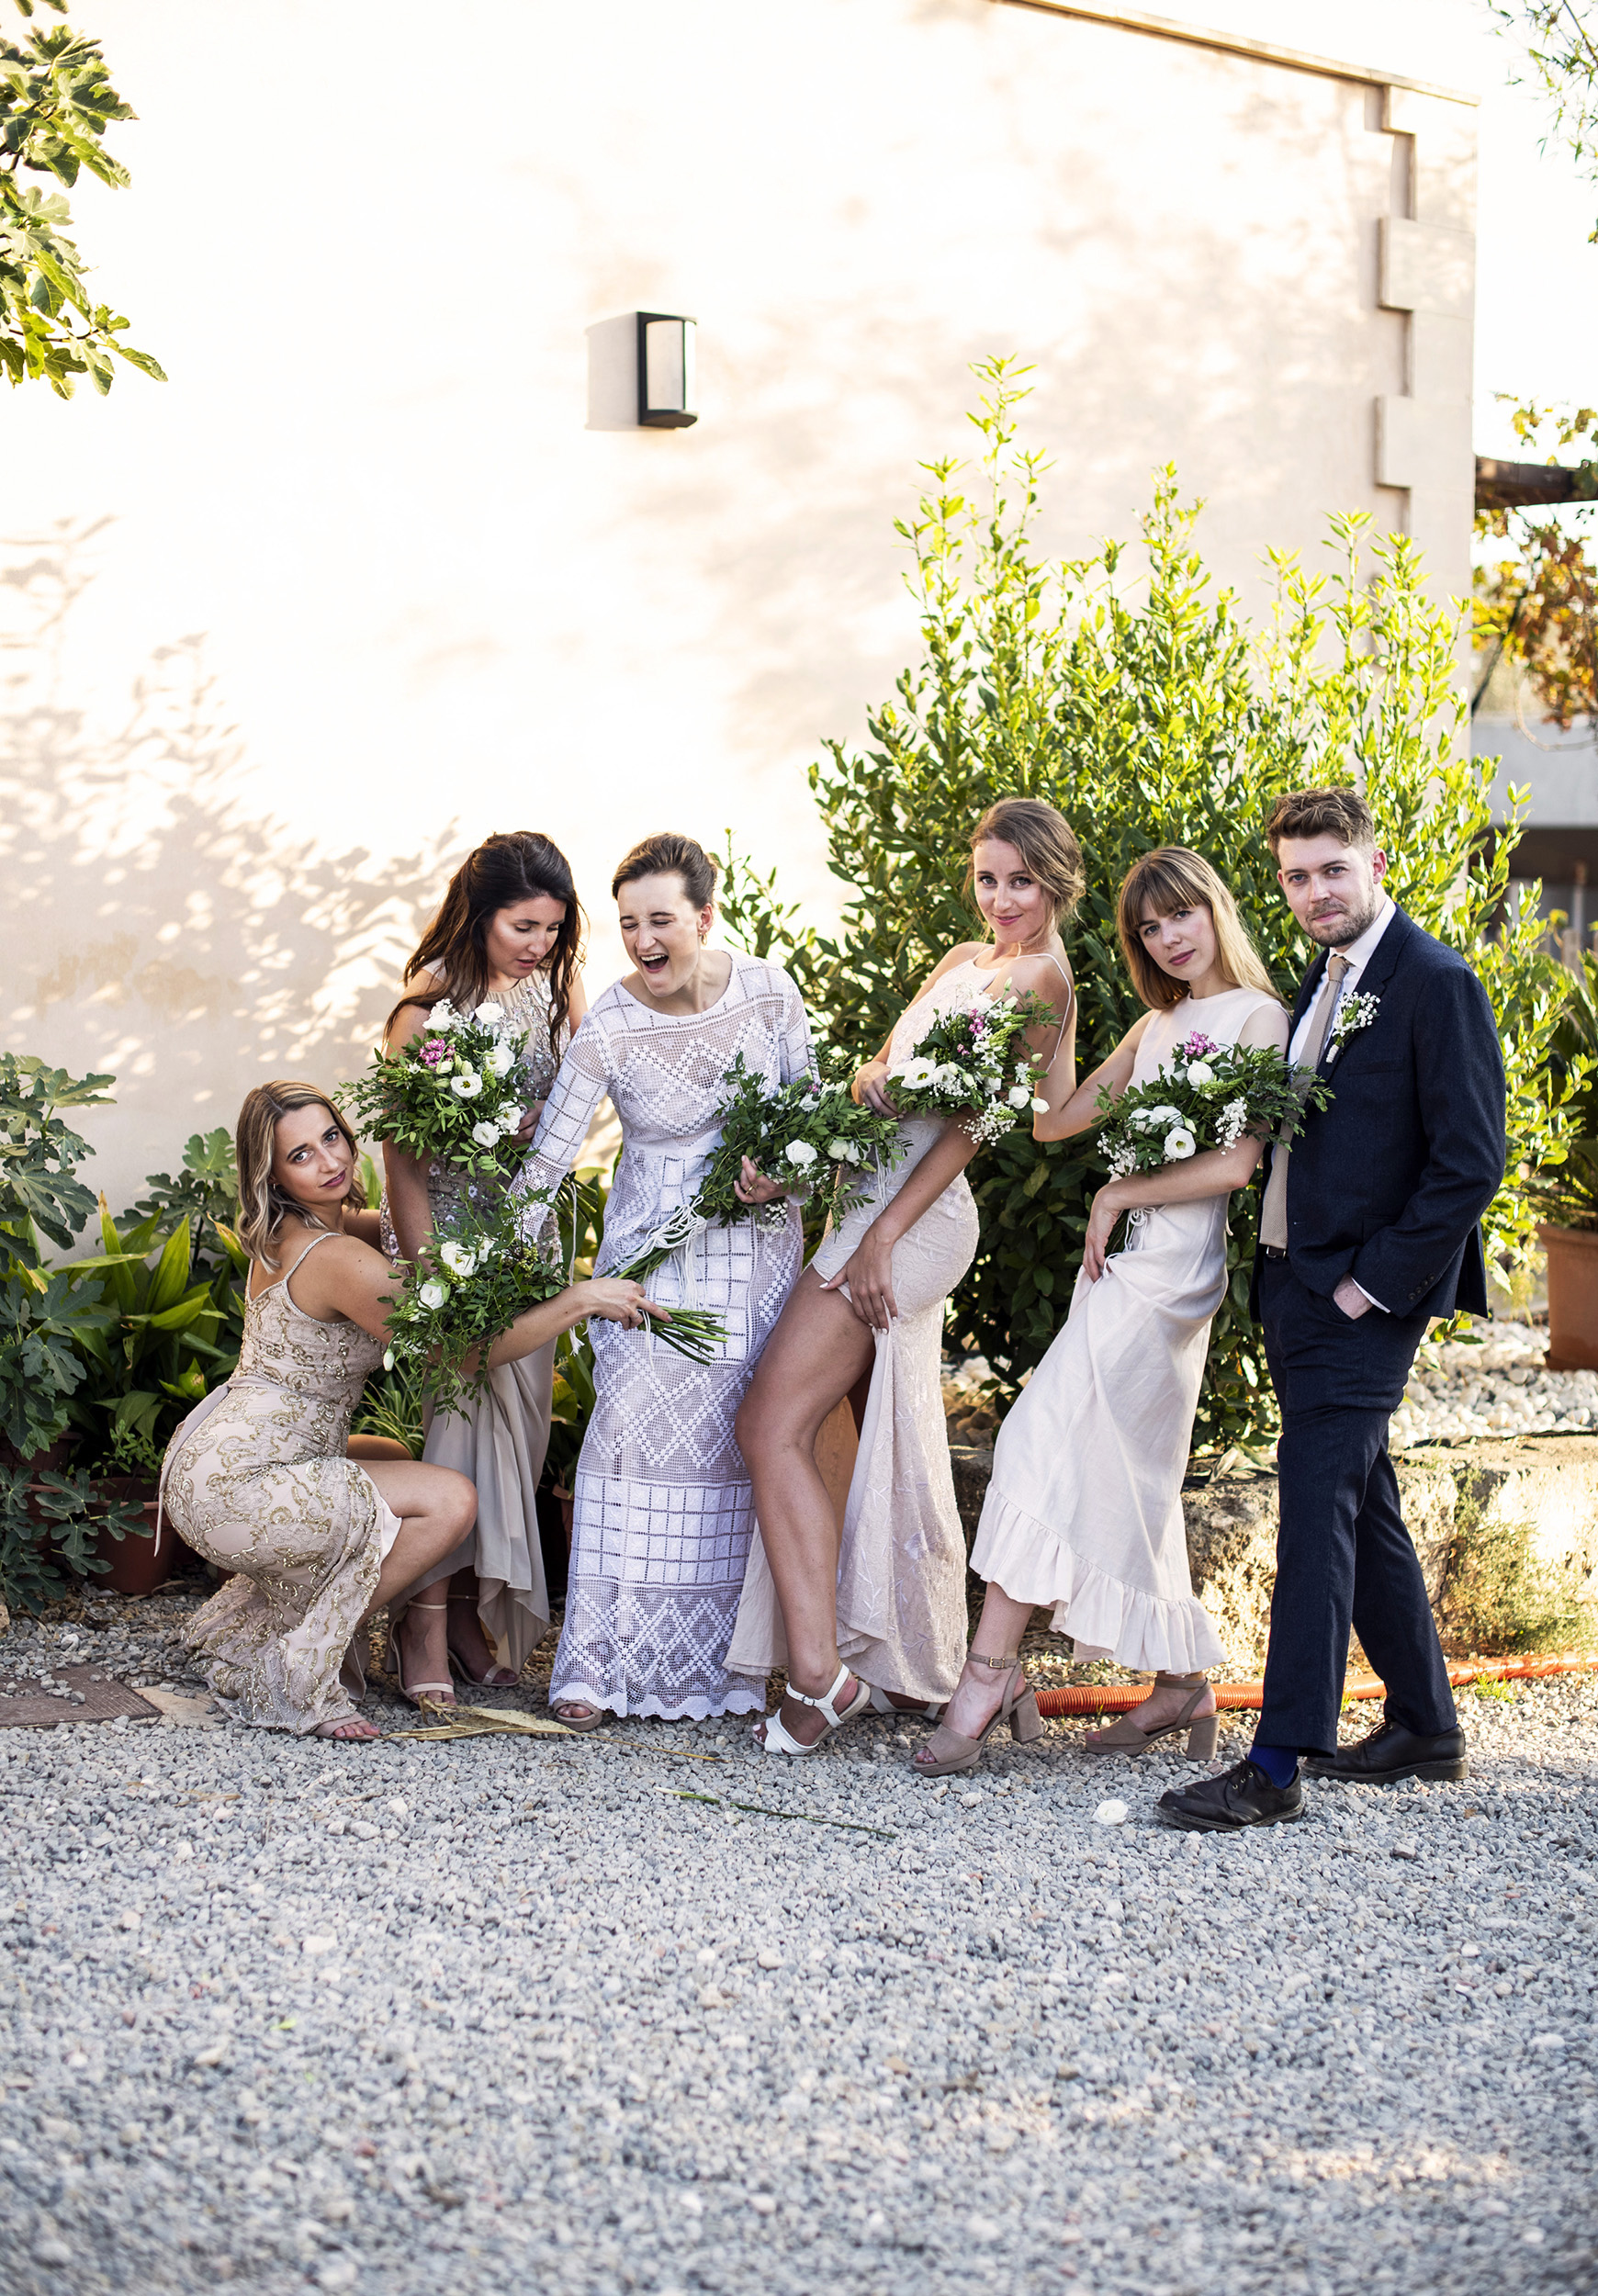 artistic female destination wedding photographer Natalia Poniatowska NPA Photography Warsaw